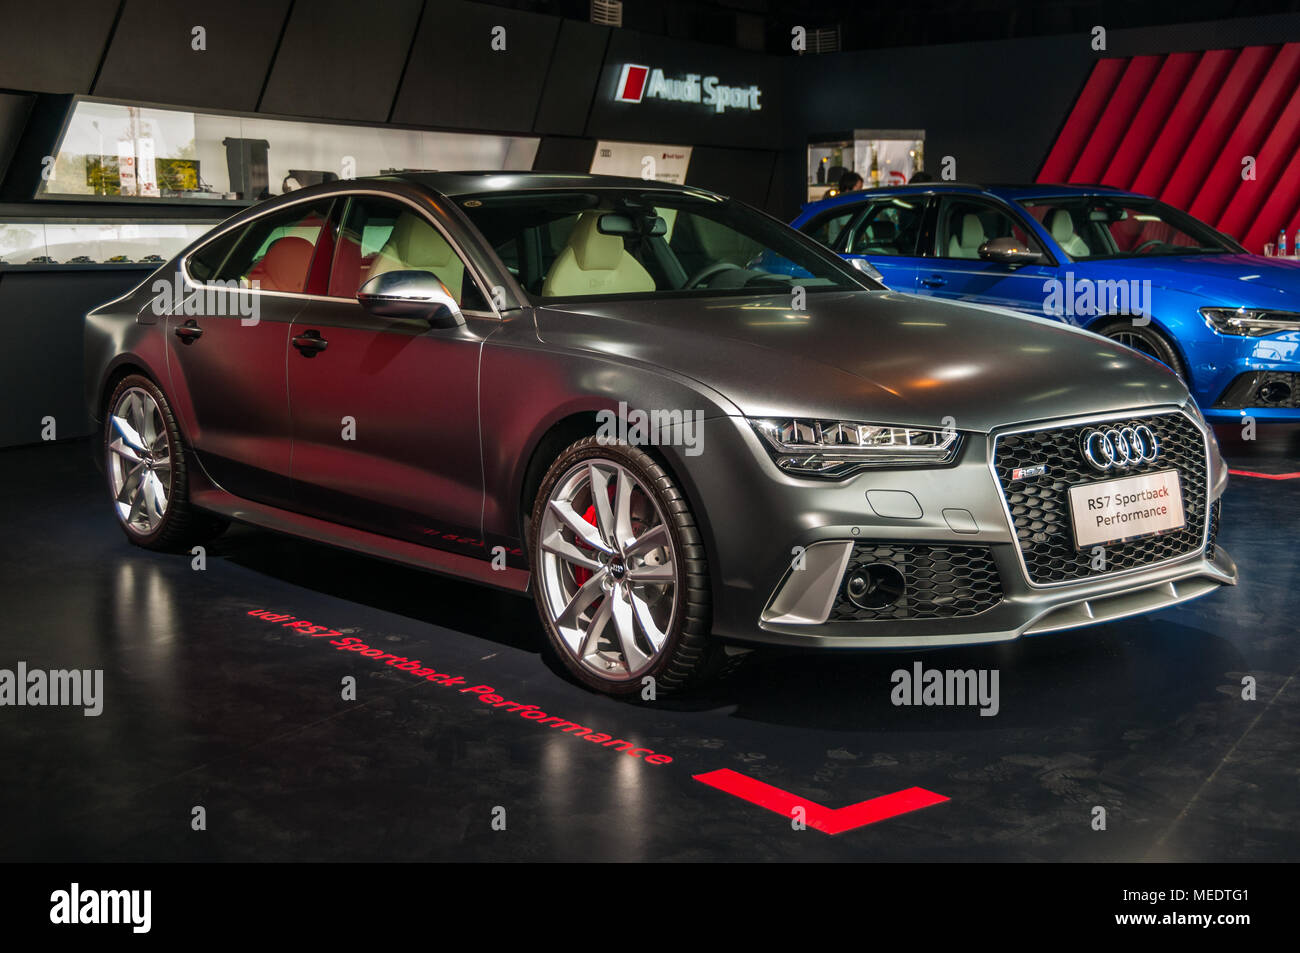 Sportback Stock Photos Images Alamy Rs7 2017 With A Red Colour Performance At An Audi Sport Event The Shanghai International Circuit Rs6